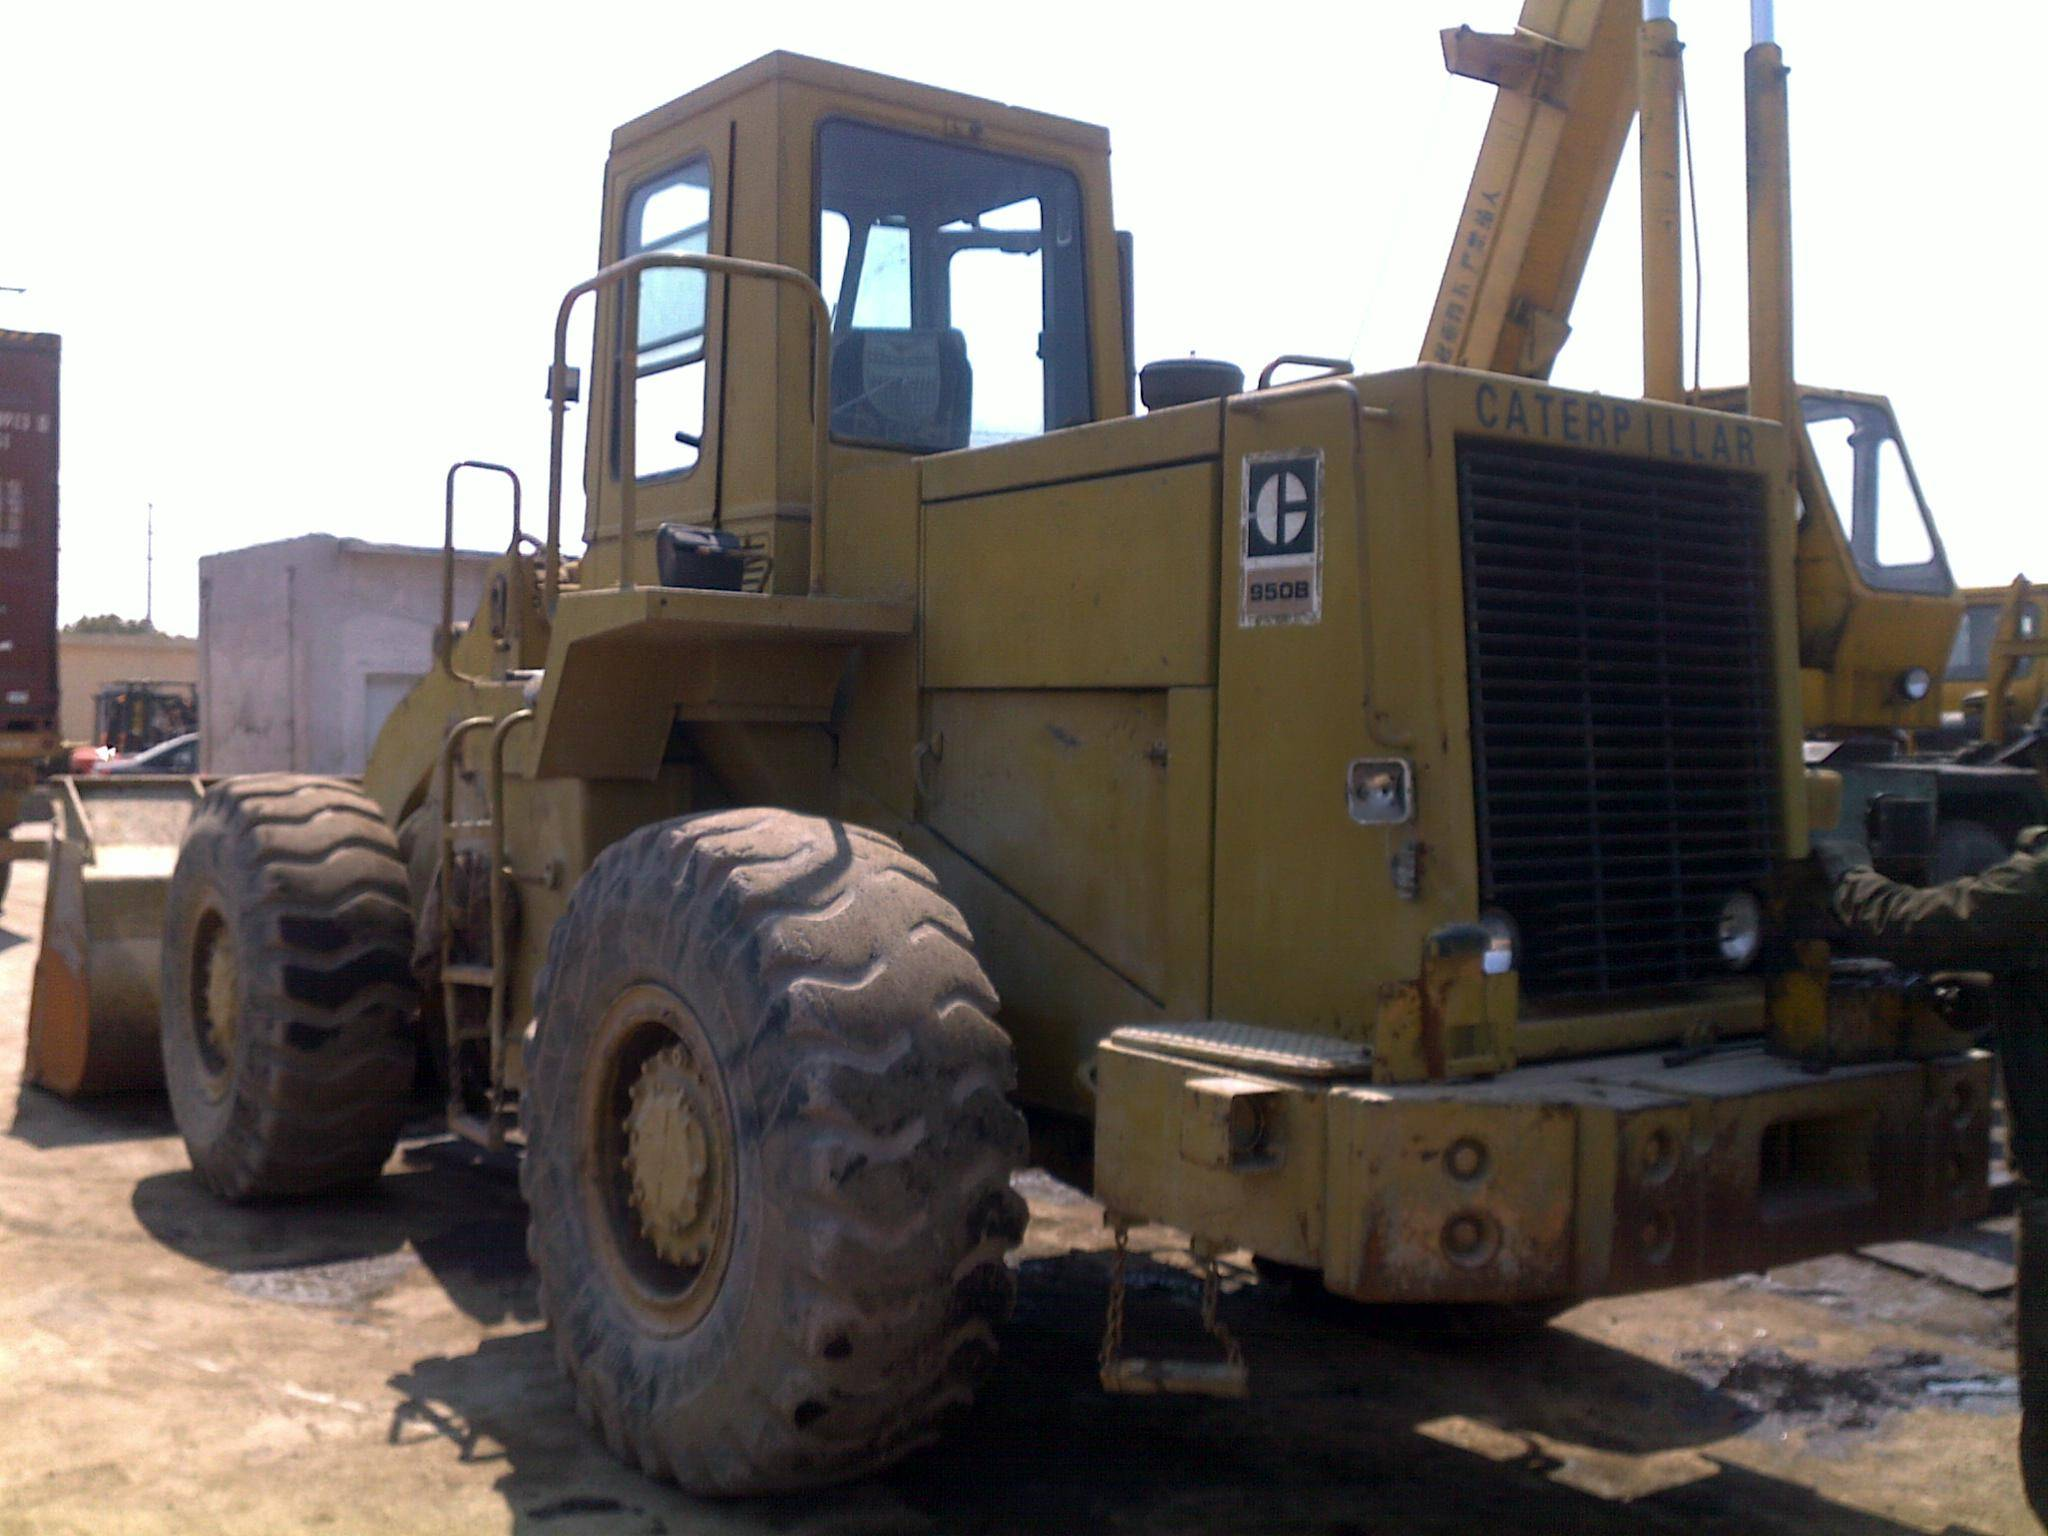 CAT 950B wheel loaders, caterpillar 950B wheel loaders